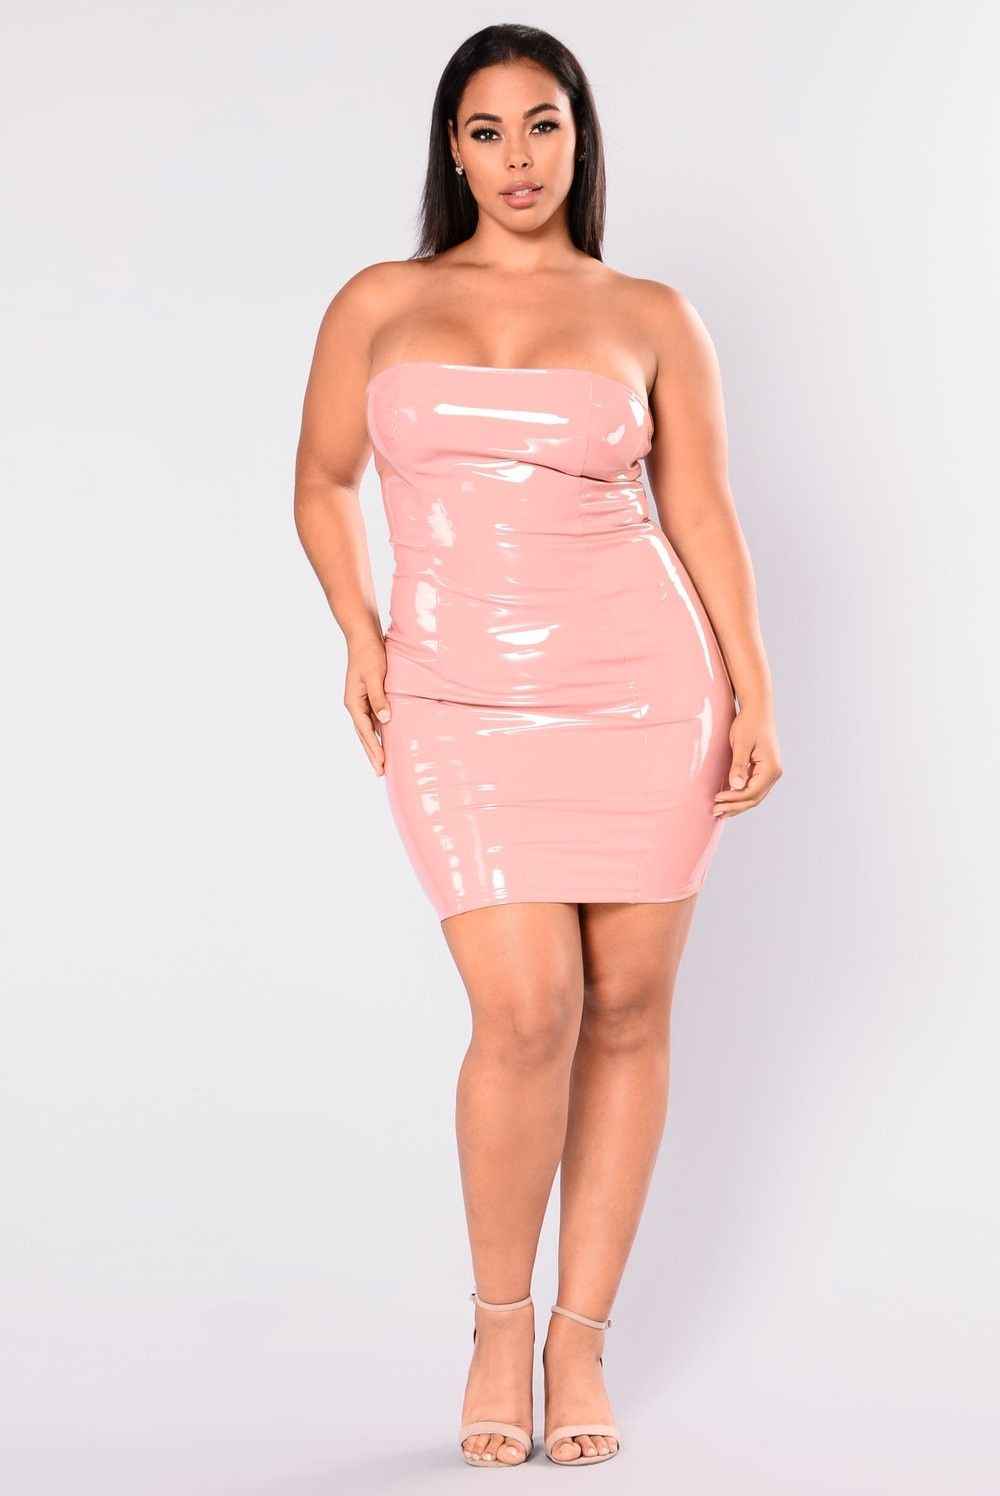 Plus Size King Kourt Latex Dress - Mauve $34.99 #fashion #ootd ...